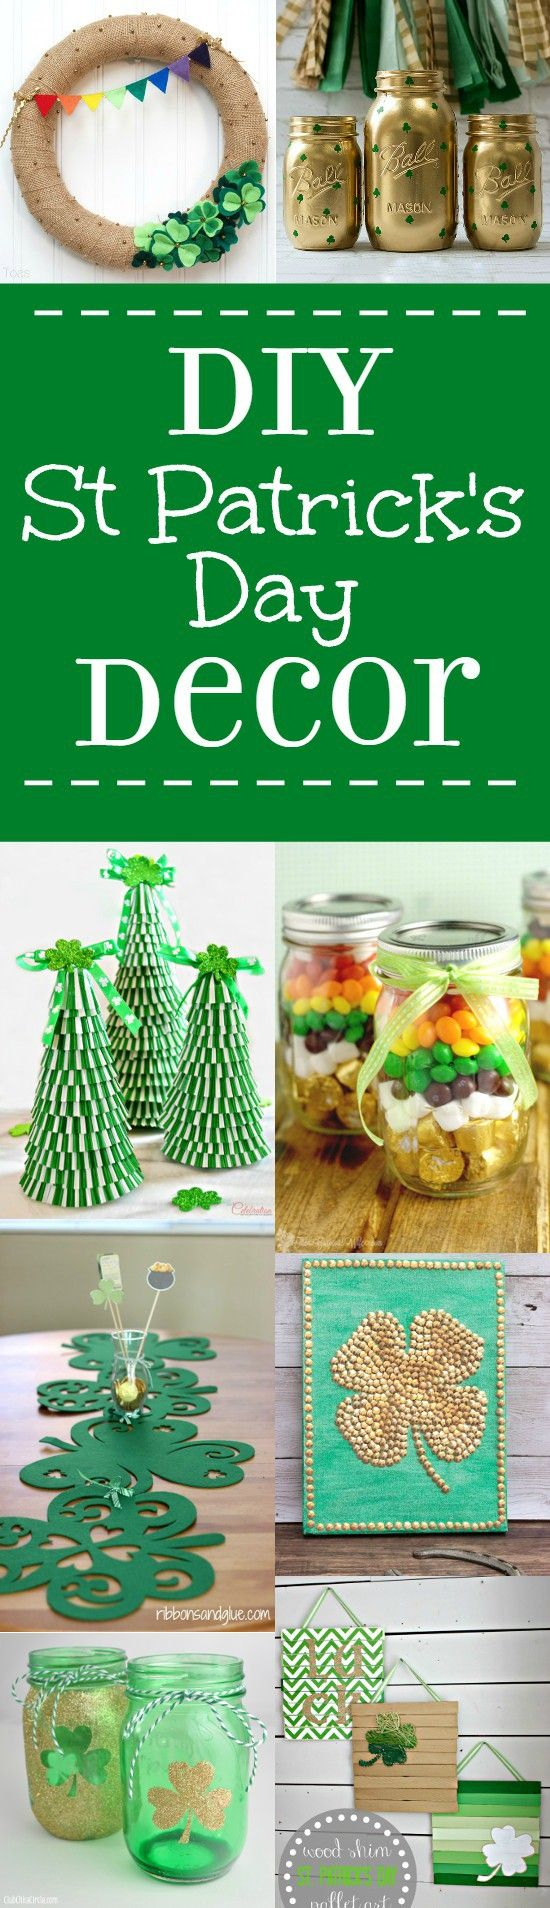 28 diy st patrick s day decorations frugal 28 diy st patrick s day decorations